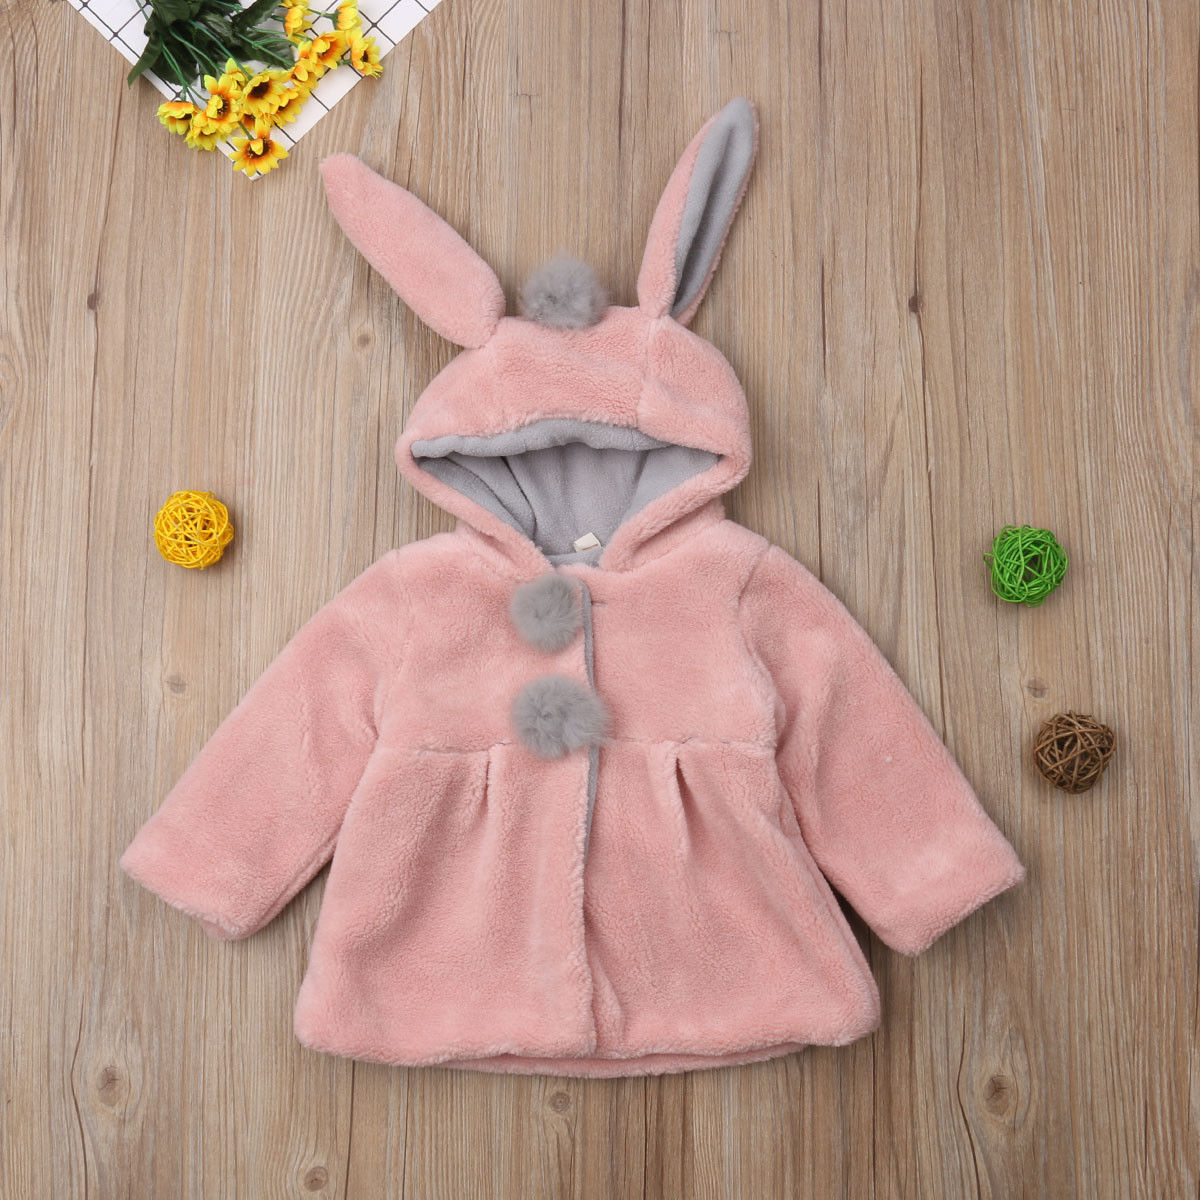 bff90ca251e8 1 4Y Baby Girls Kids Warm Rabbit Ear Bunny Hoodies Coat Winter ...